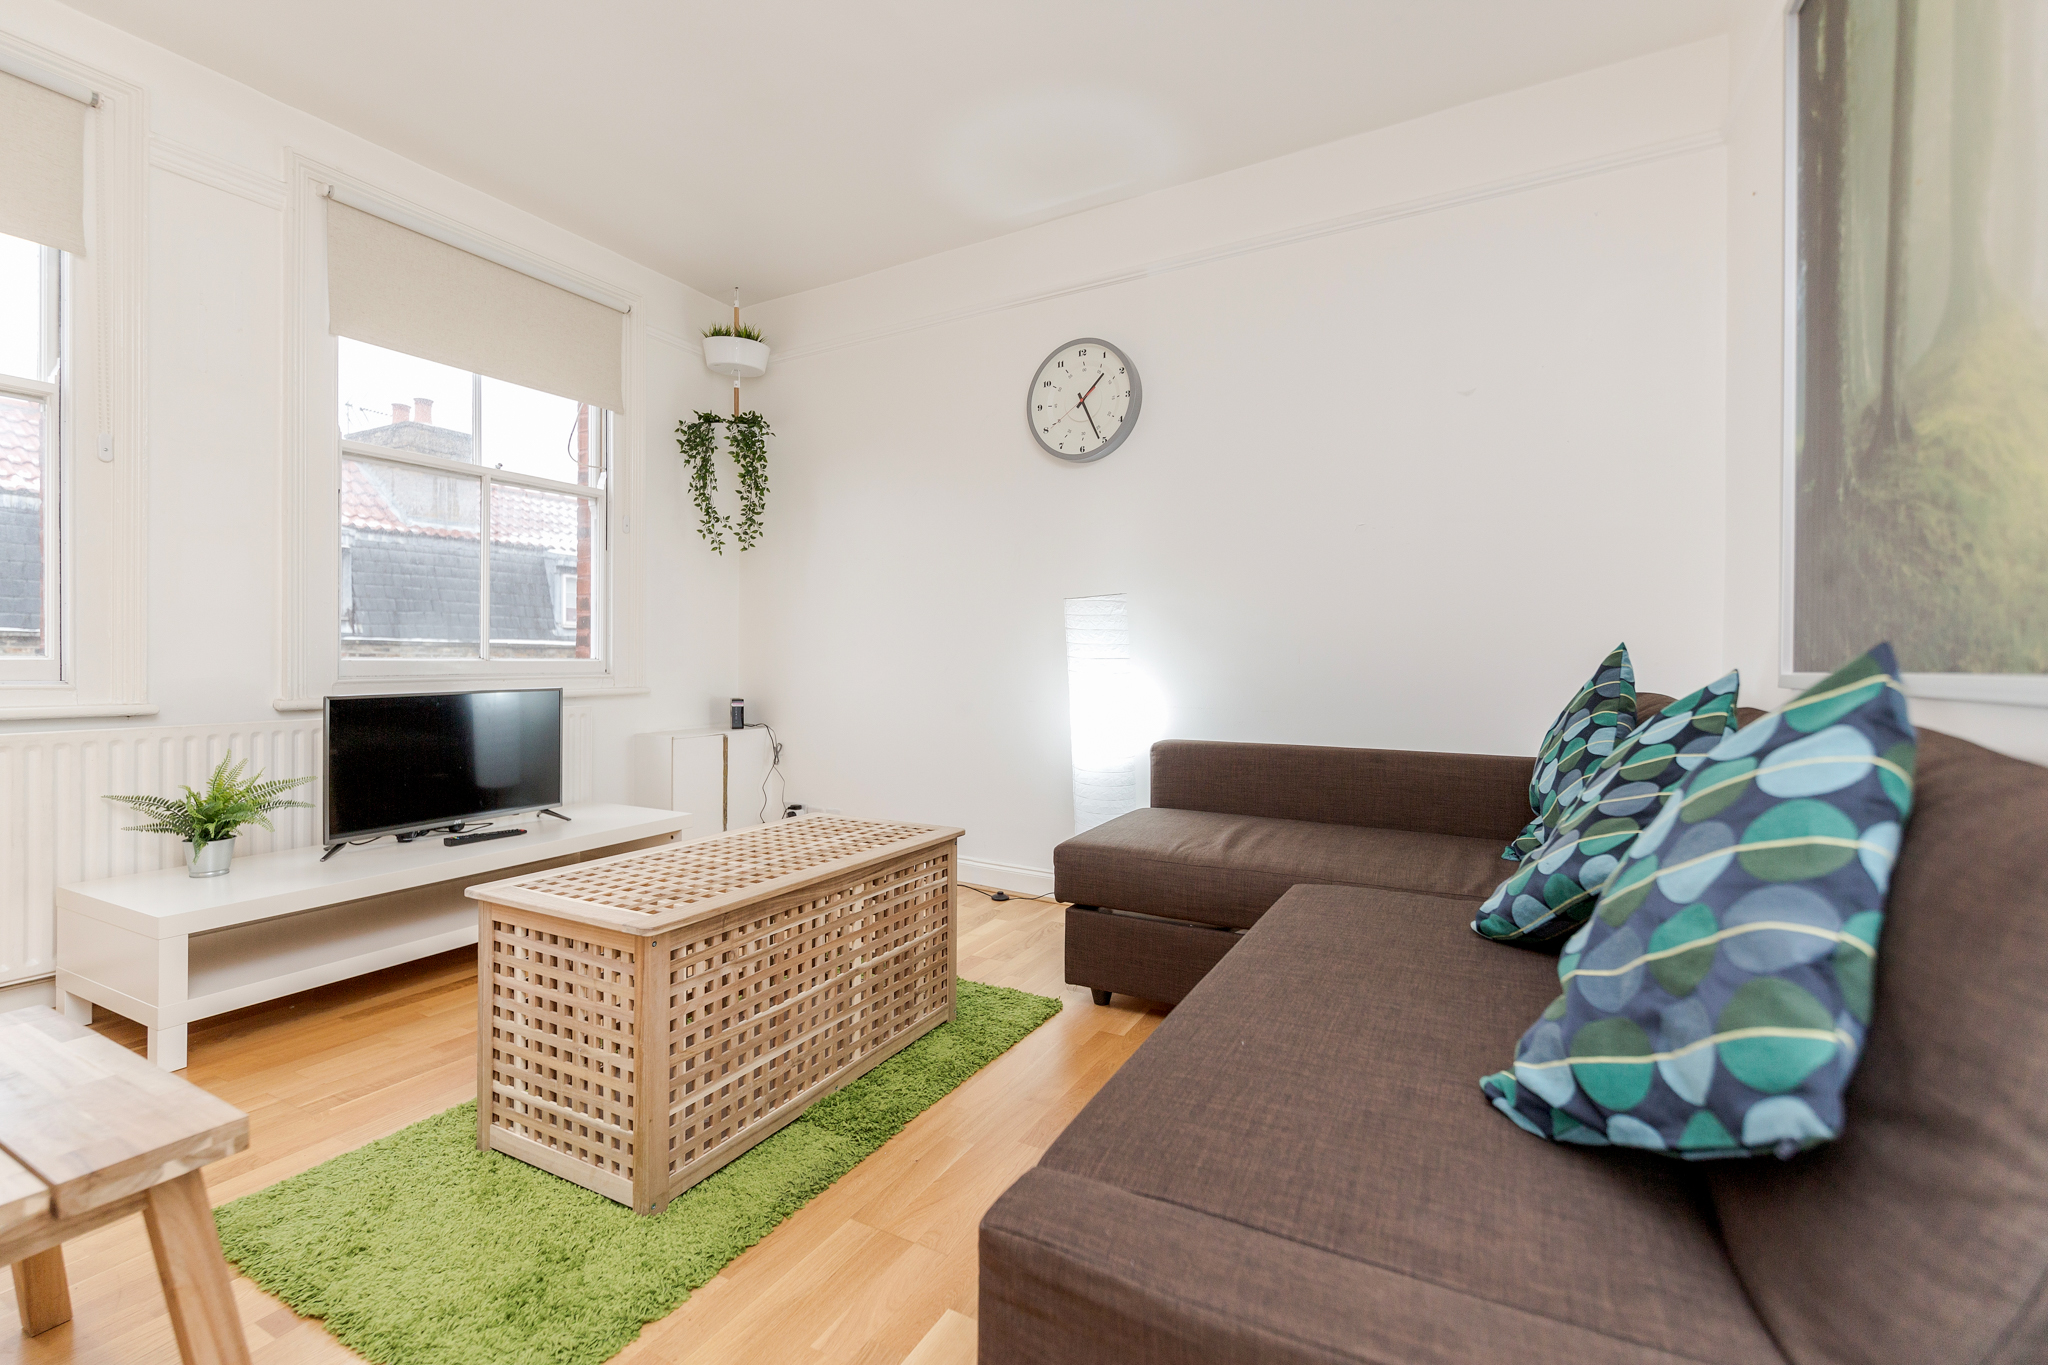 Contemporary East London Style Apartment in the heart of Brick Lane - one Minute from The Truman Brewery  photo 20324098